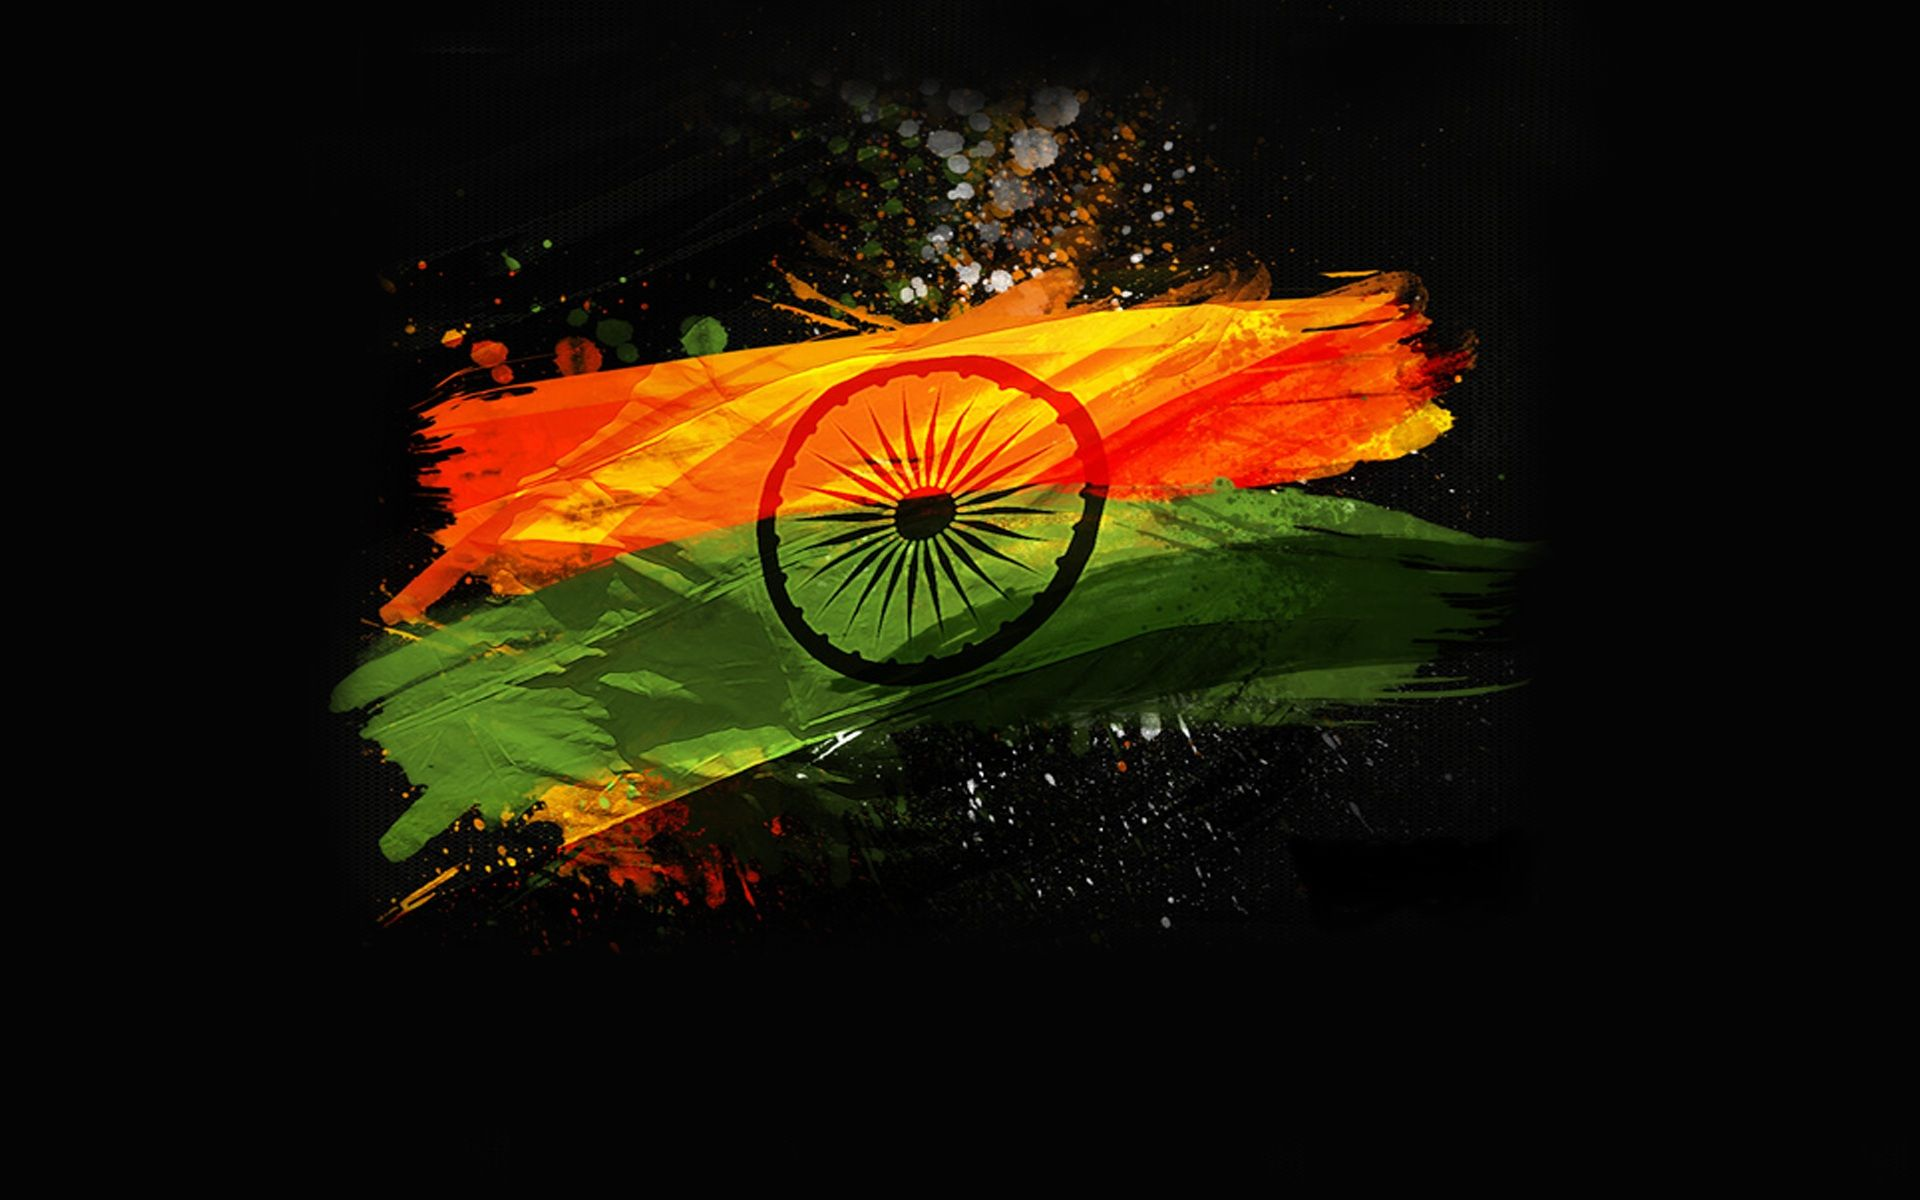 Hd wallpaper mobile phone - Indian Army Wallpapers For Mobile Phones Google Search